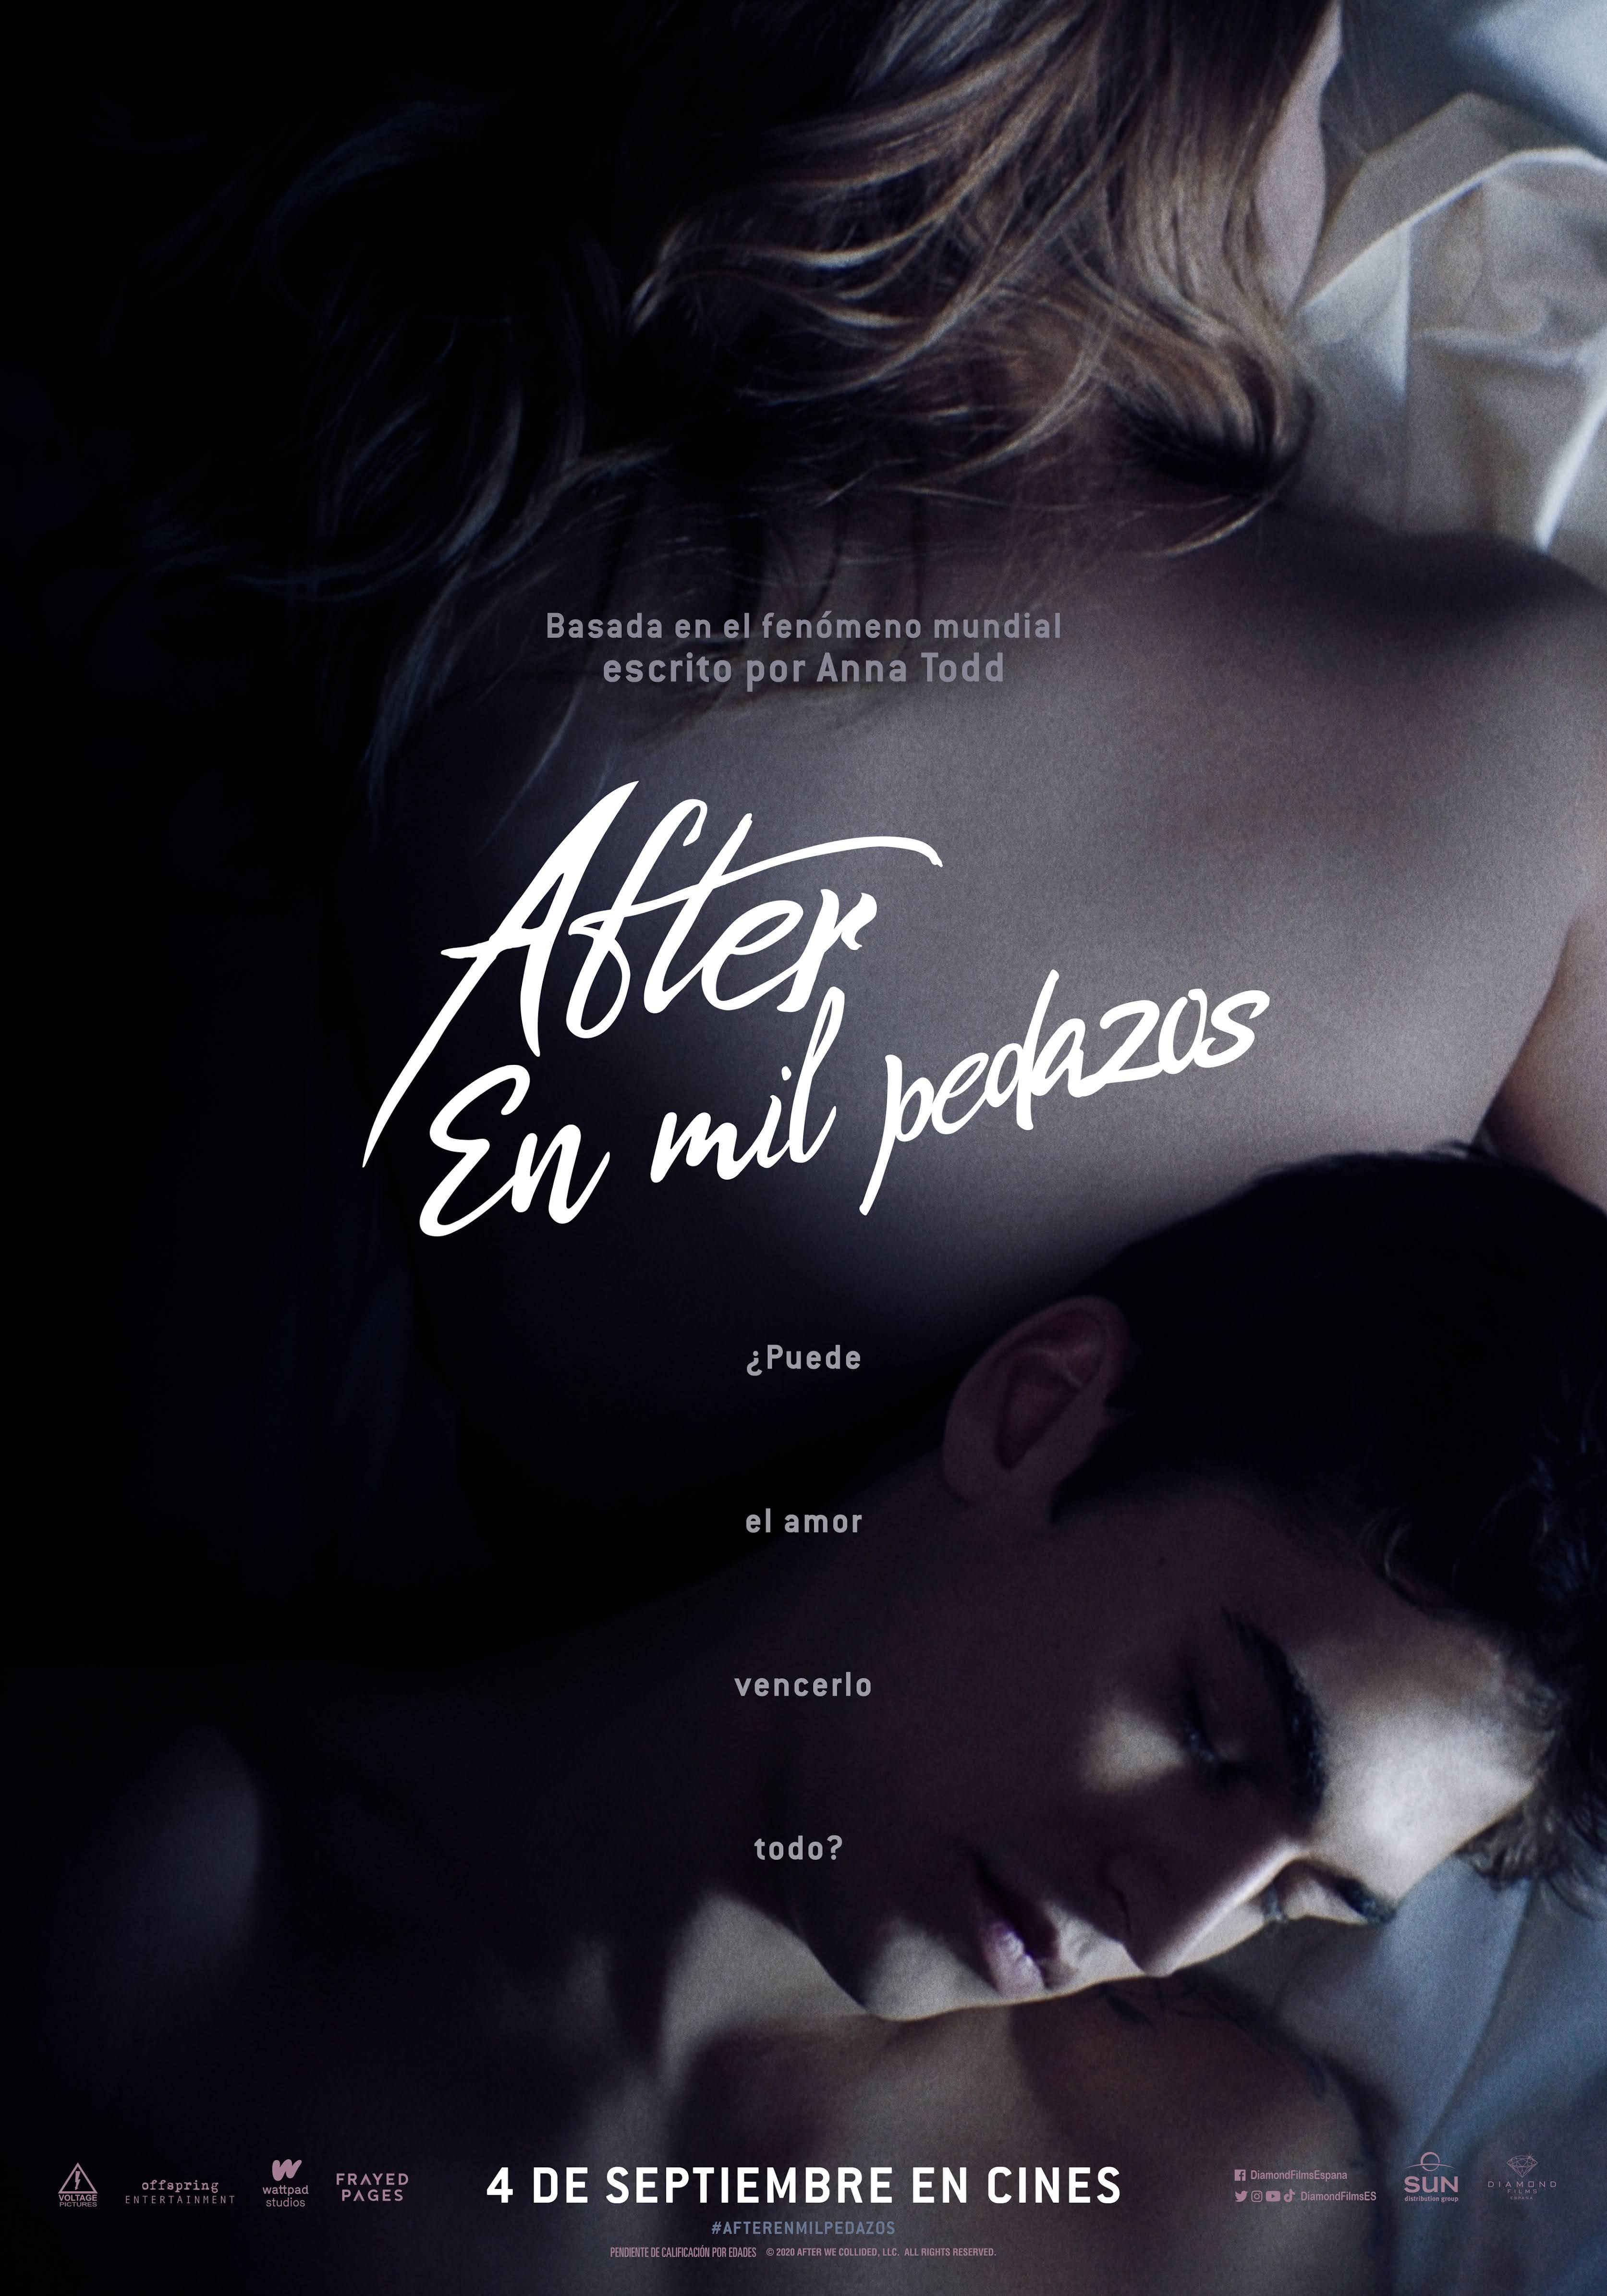 After En Mil Pedazos Free Movies Online Full Movies Movies Online